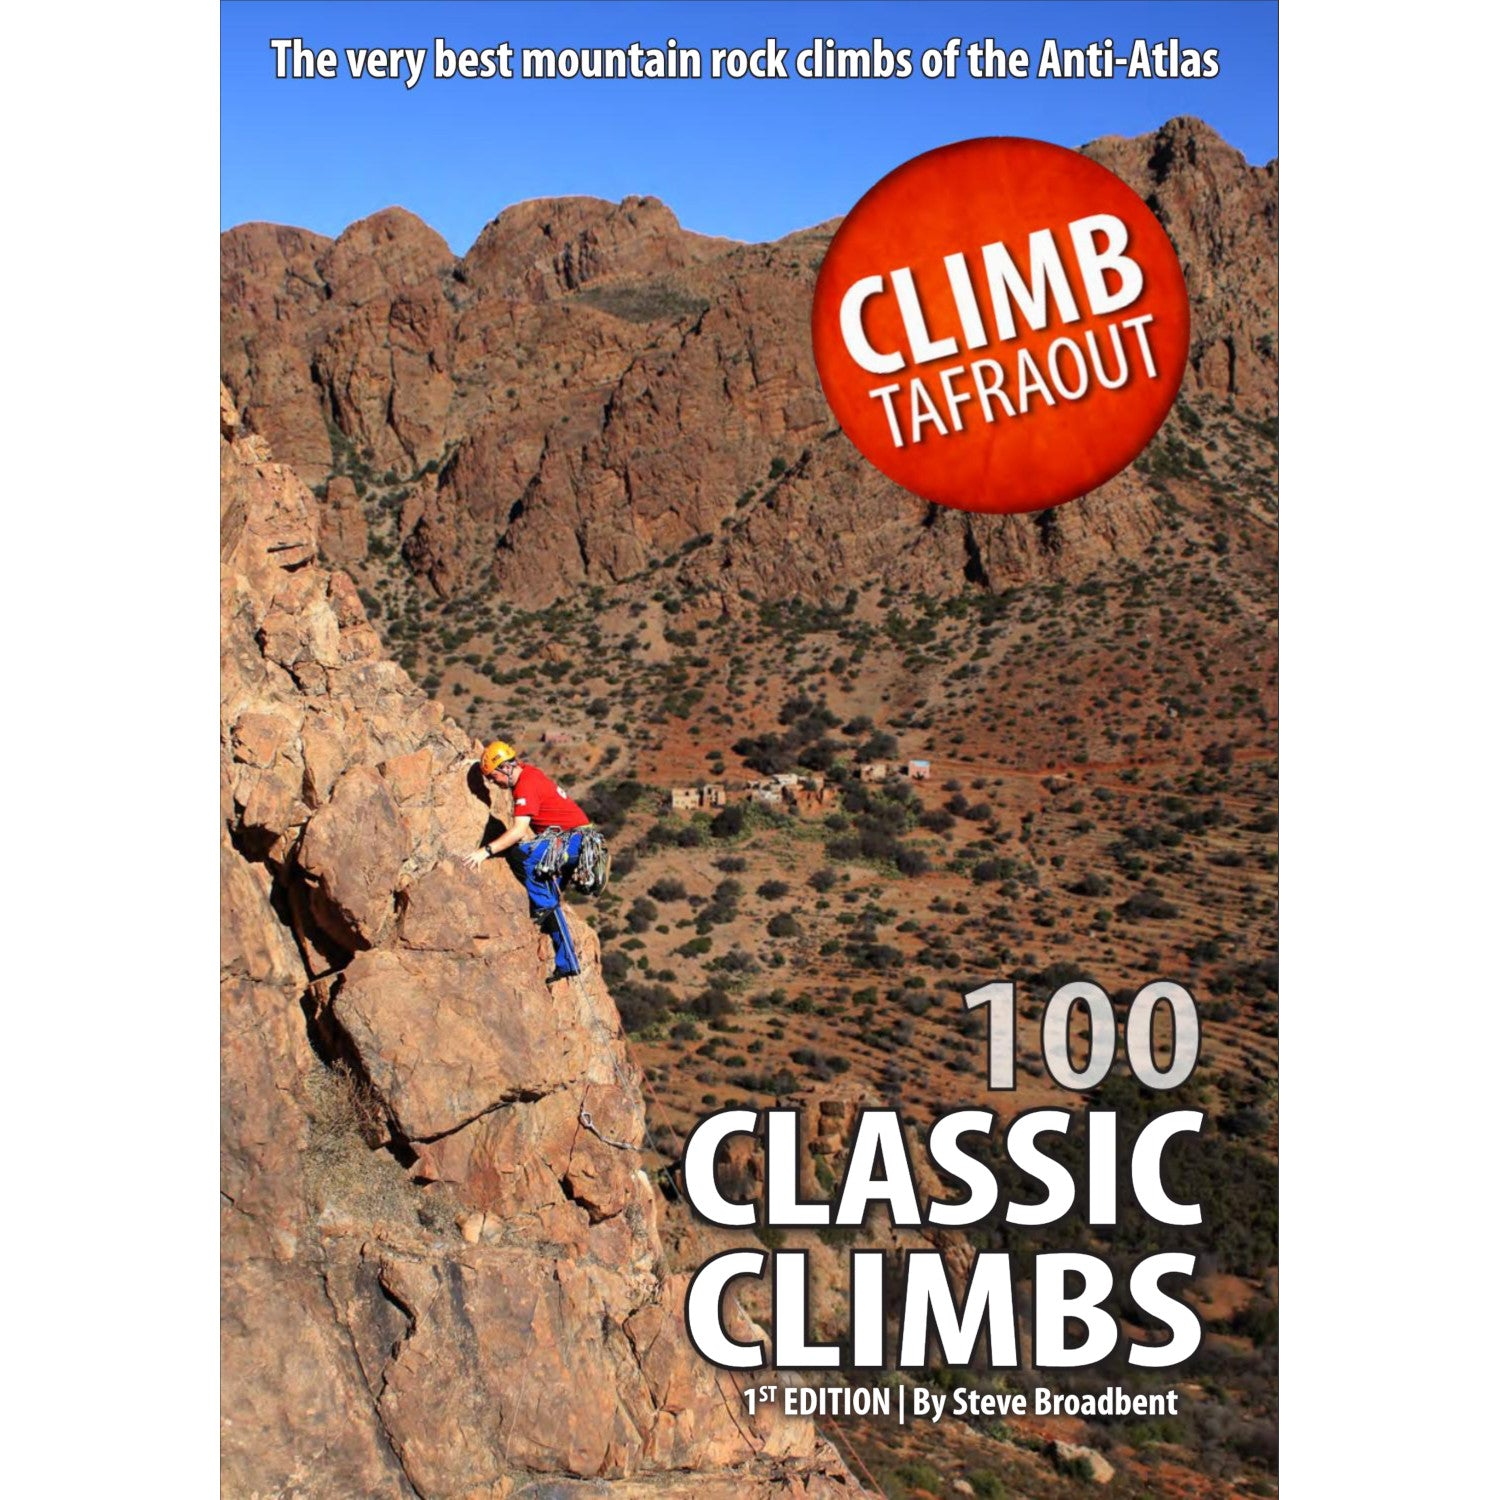 Climb Tafraout (100 Classic Climbs) climbing guidebook, showing the front cover